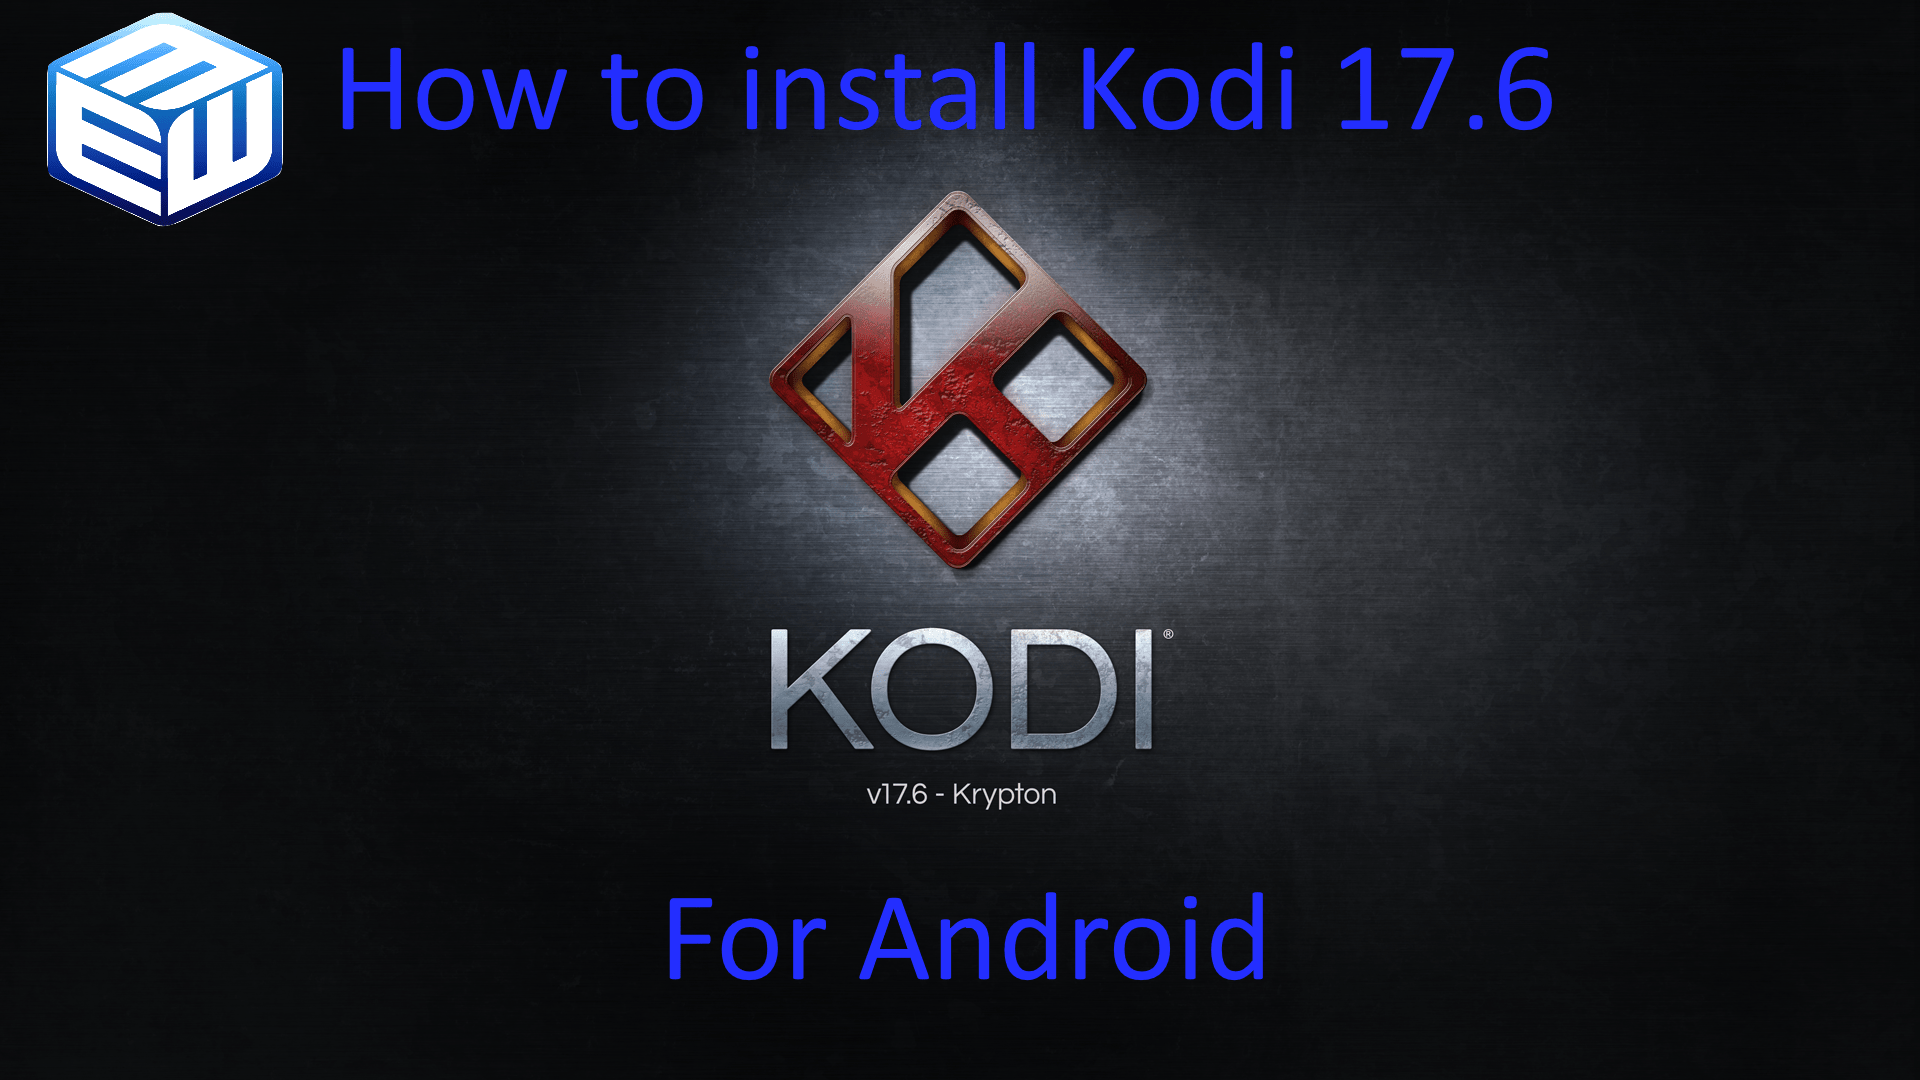 How To Install Kodi 17 6 Update For Android Entertainment Box